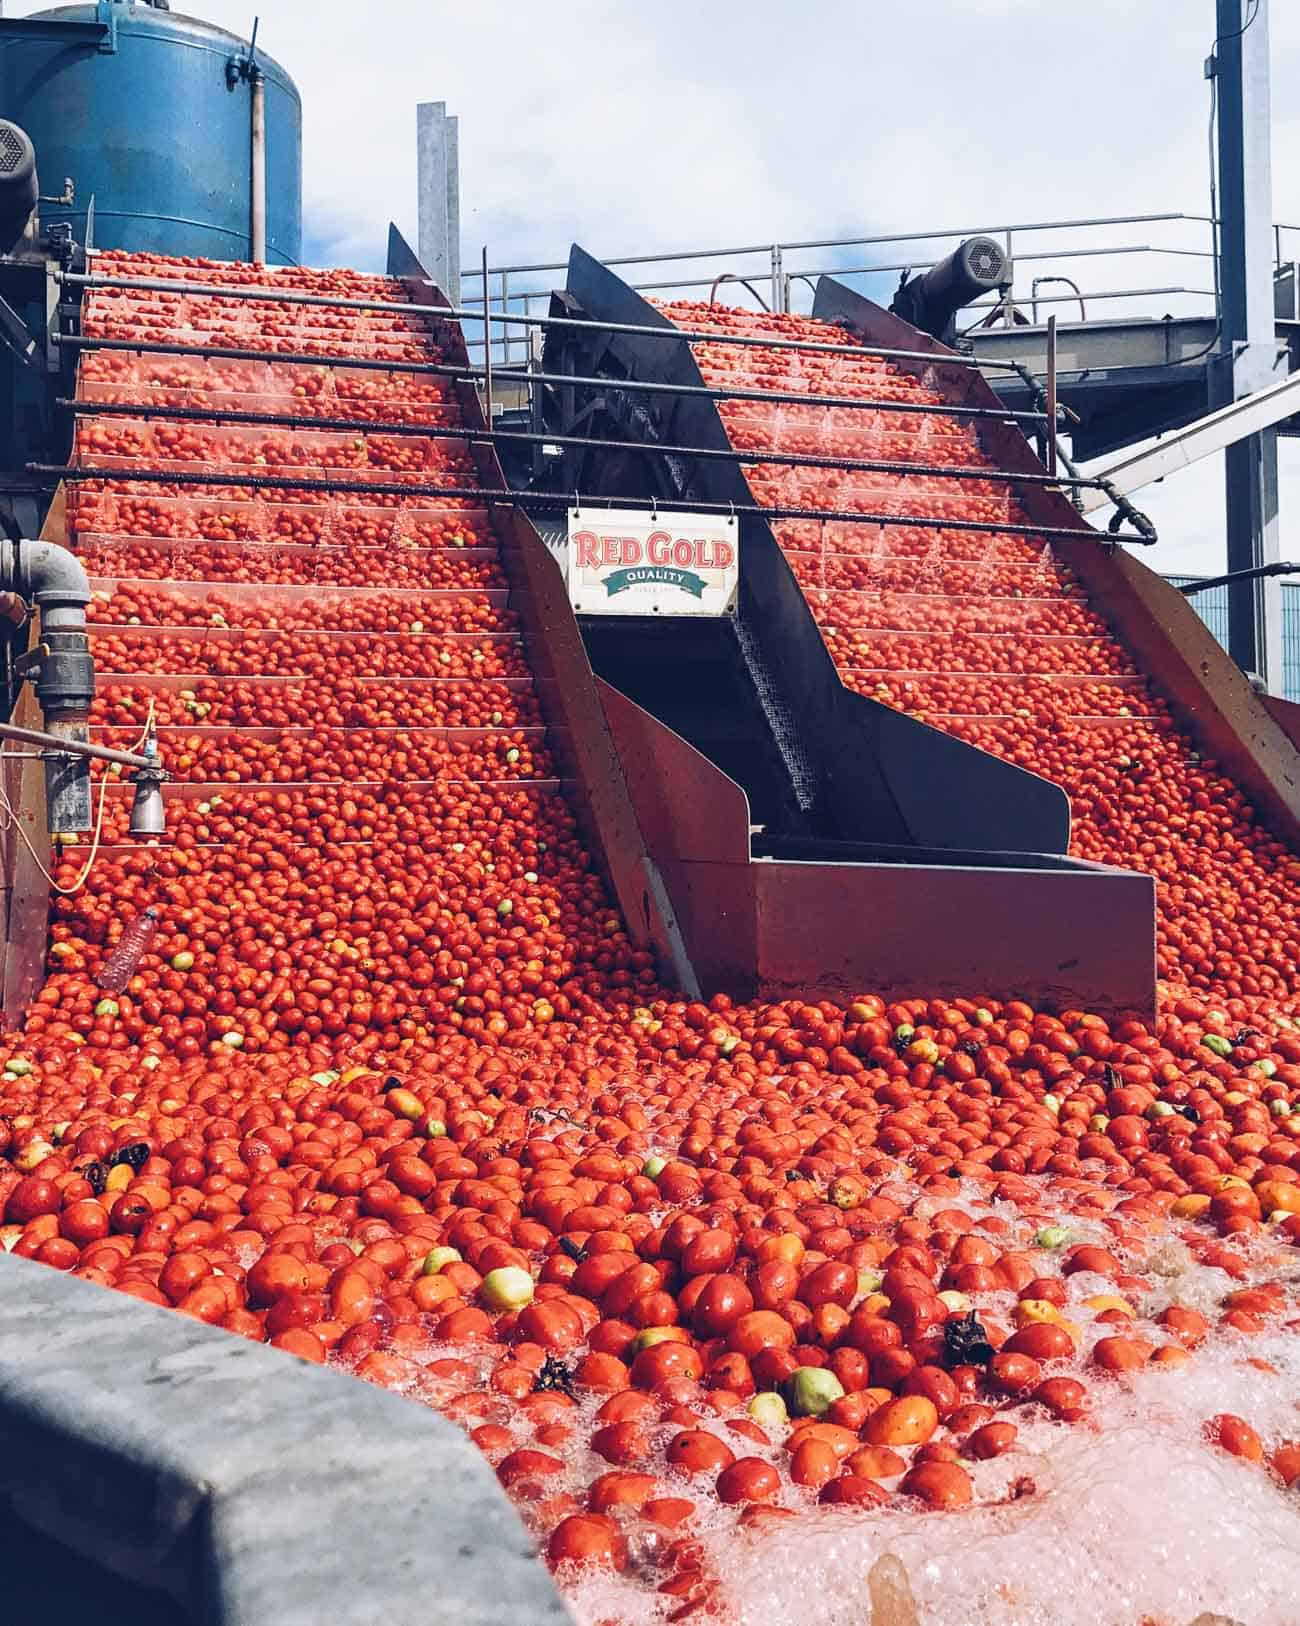 Processing tomatoes at Tuttorosso factory